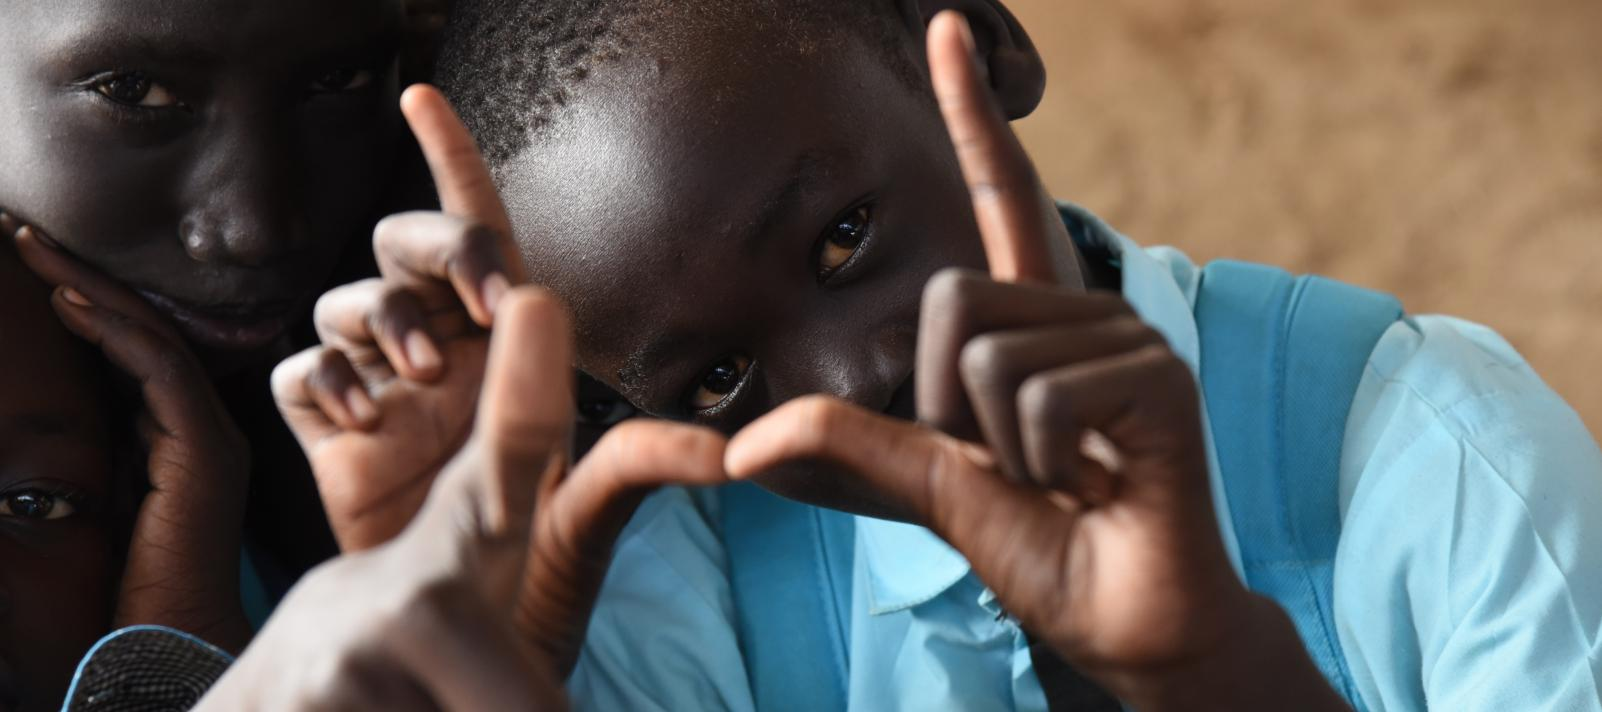 UNICEF is working on realizing every child in South Sudan's rights